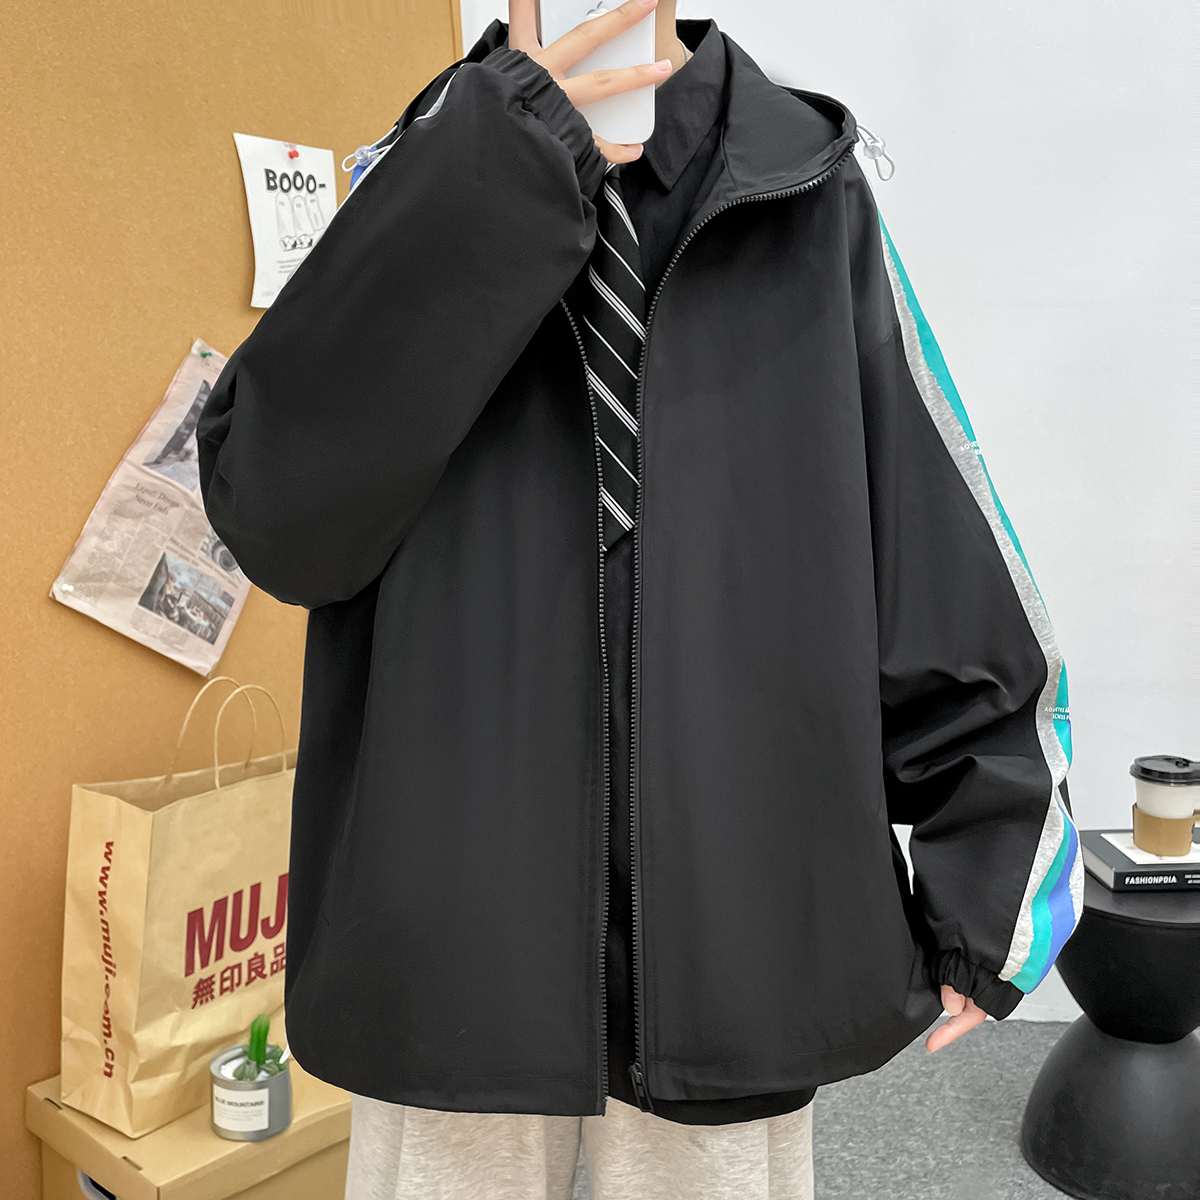 2021 new port Style Mens casual simple and versatile fashion printed jacket coat a110-jk6026-p80